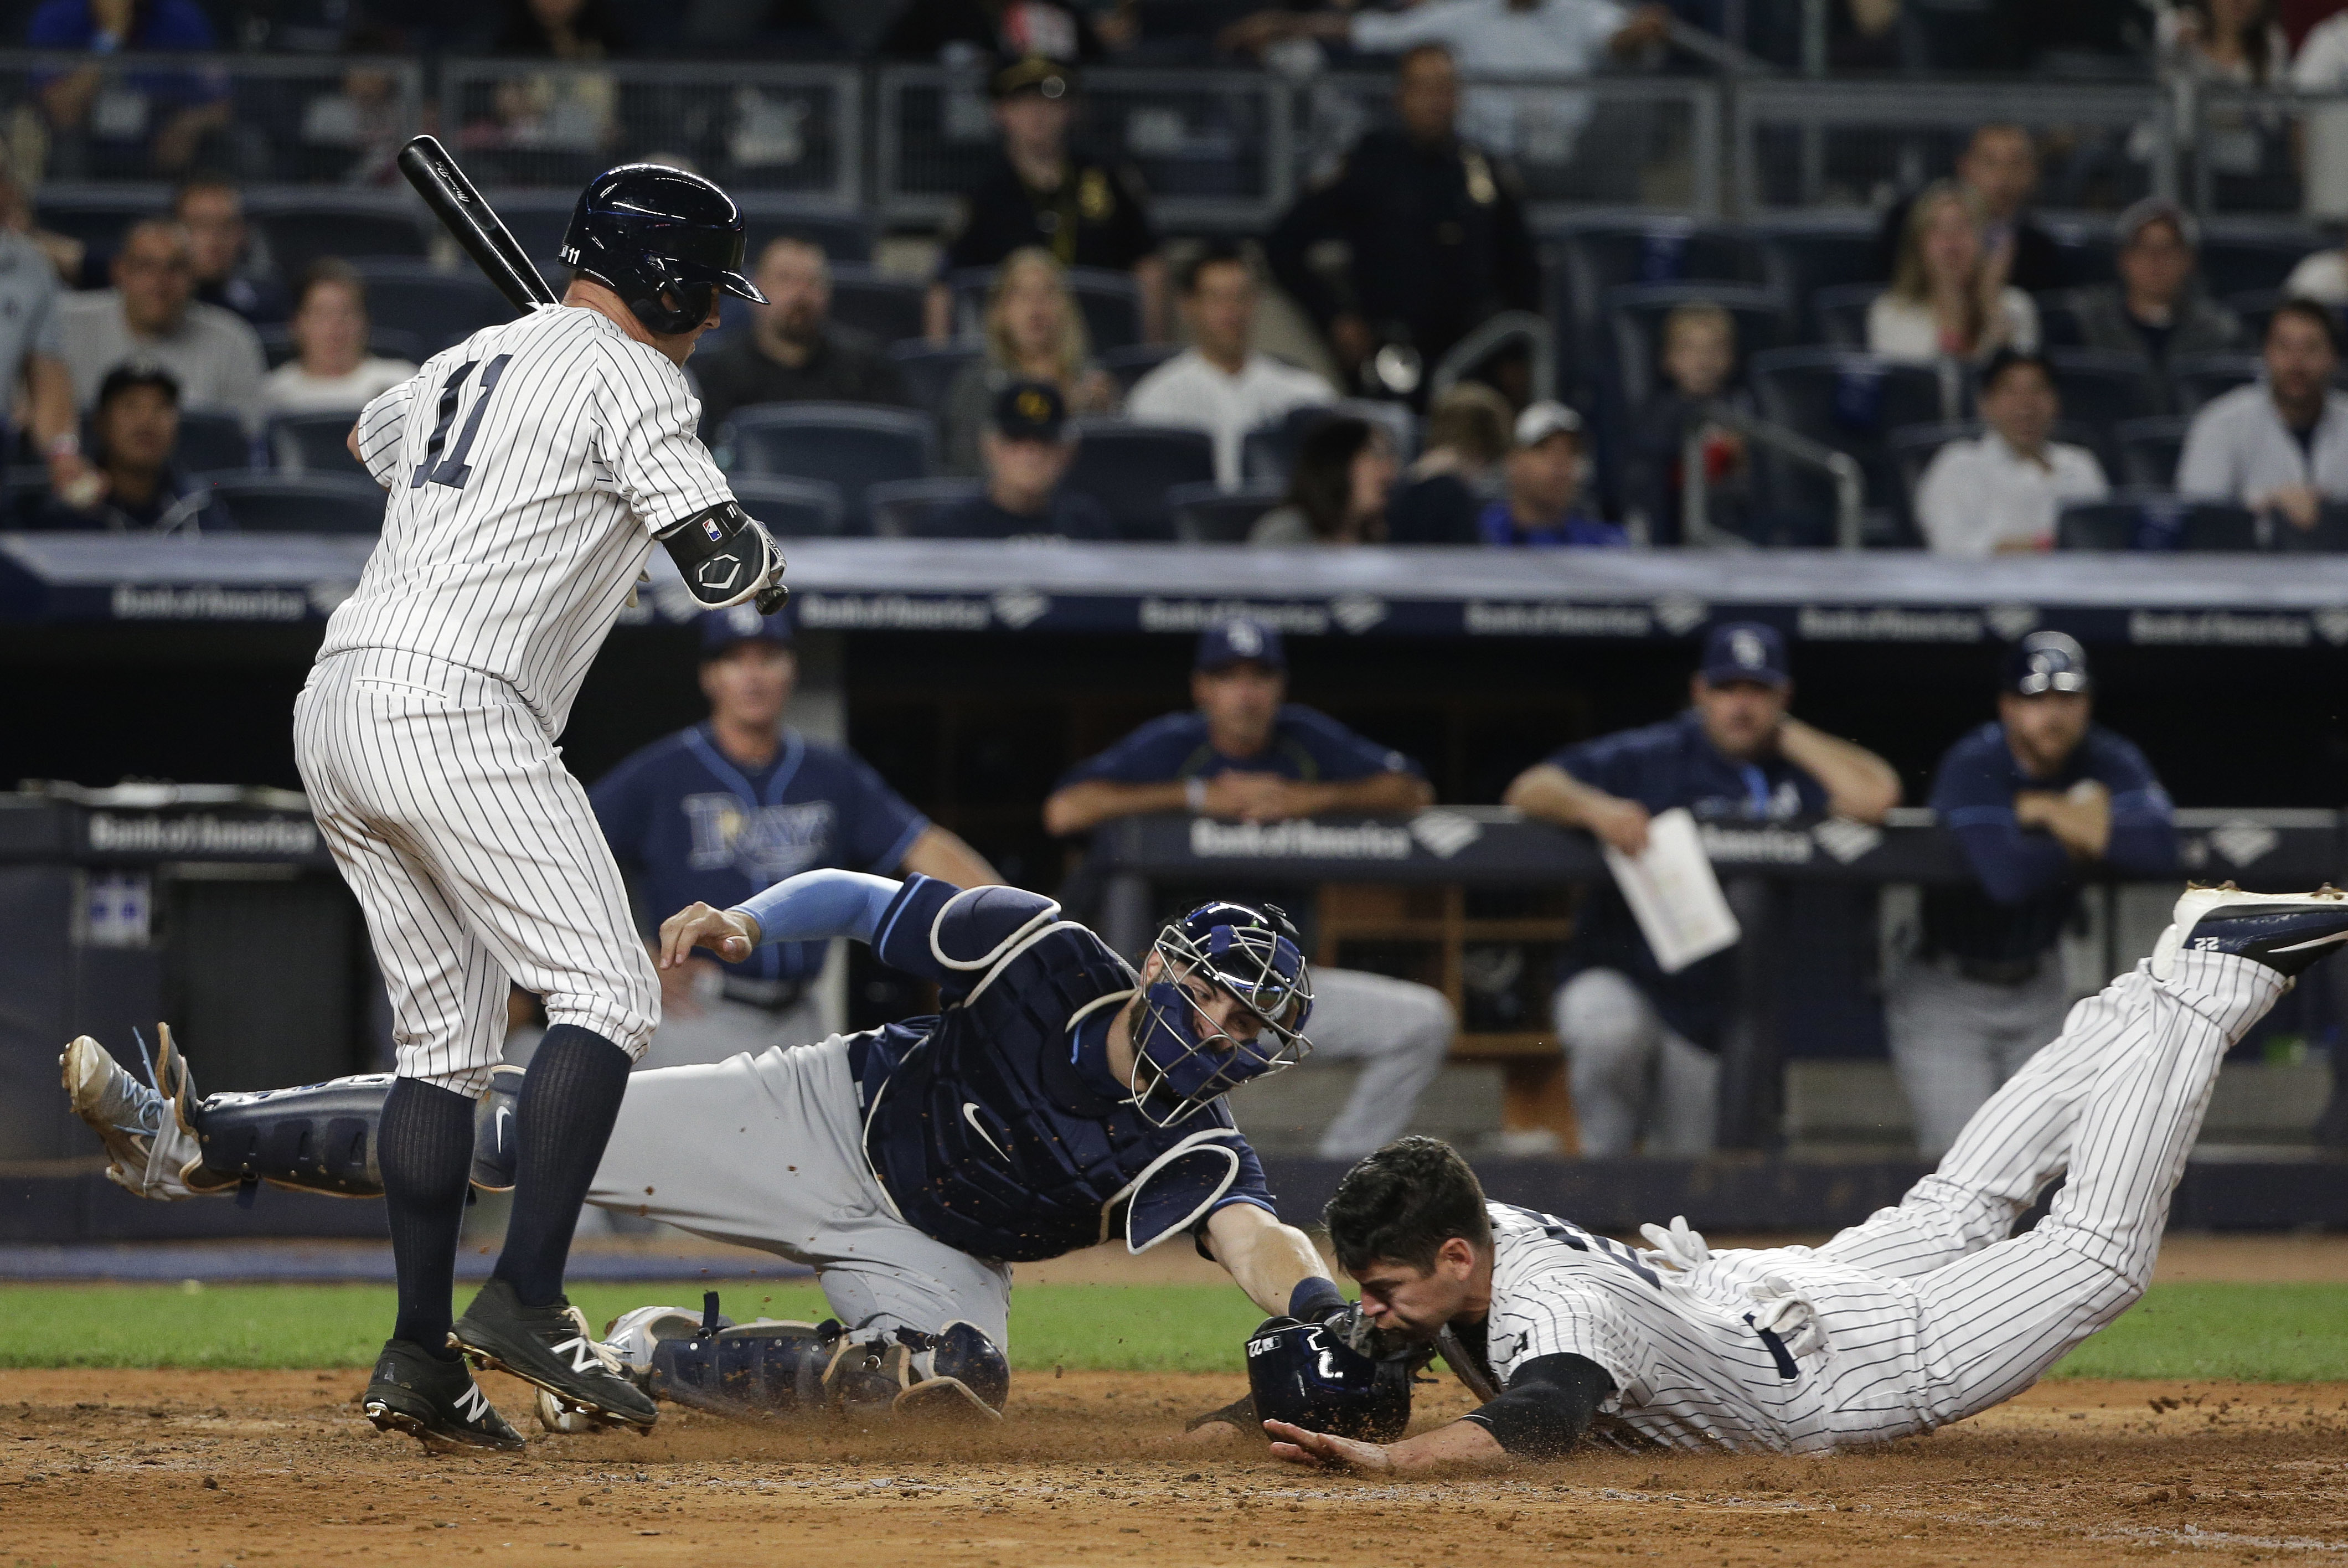 New York Yankees' Jacoby Ellsbury slides under the tag from Tampa Bay Rays catcher Curt Casali (19) to steal home as Yankees' Brett Gardner (11) steps out of the way during the fifth inning of a baseball game, Friday, April 22, 2016, in New York. (AP Phot